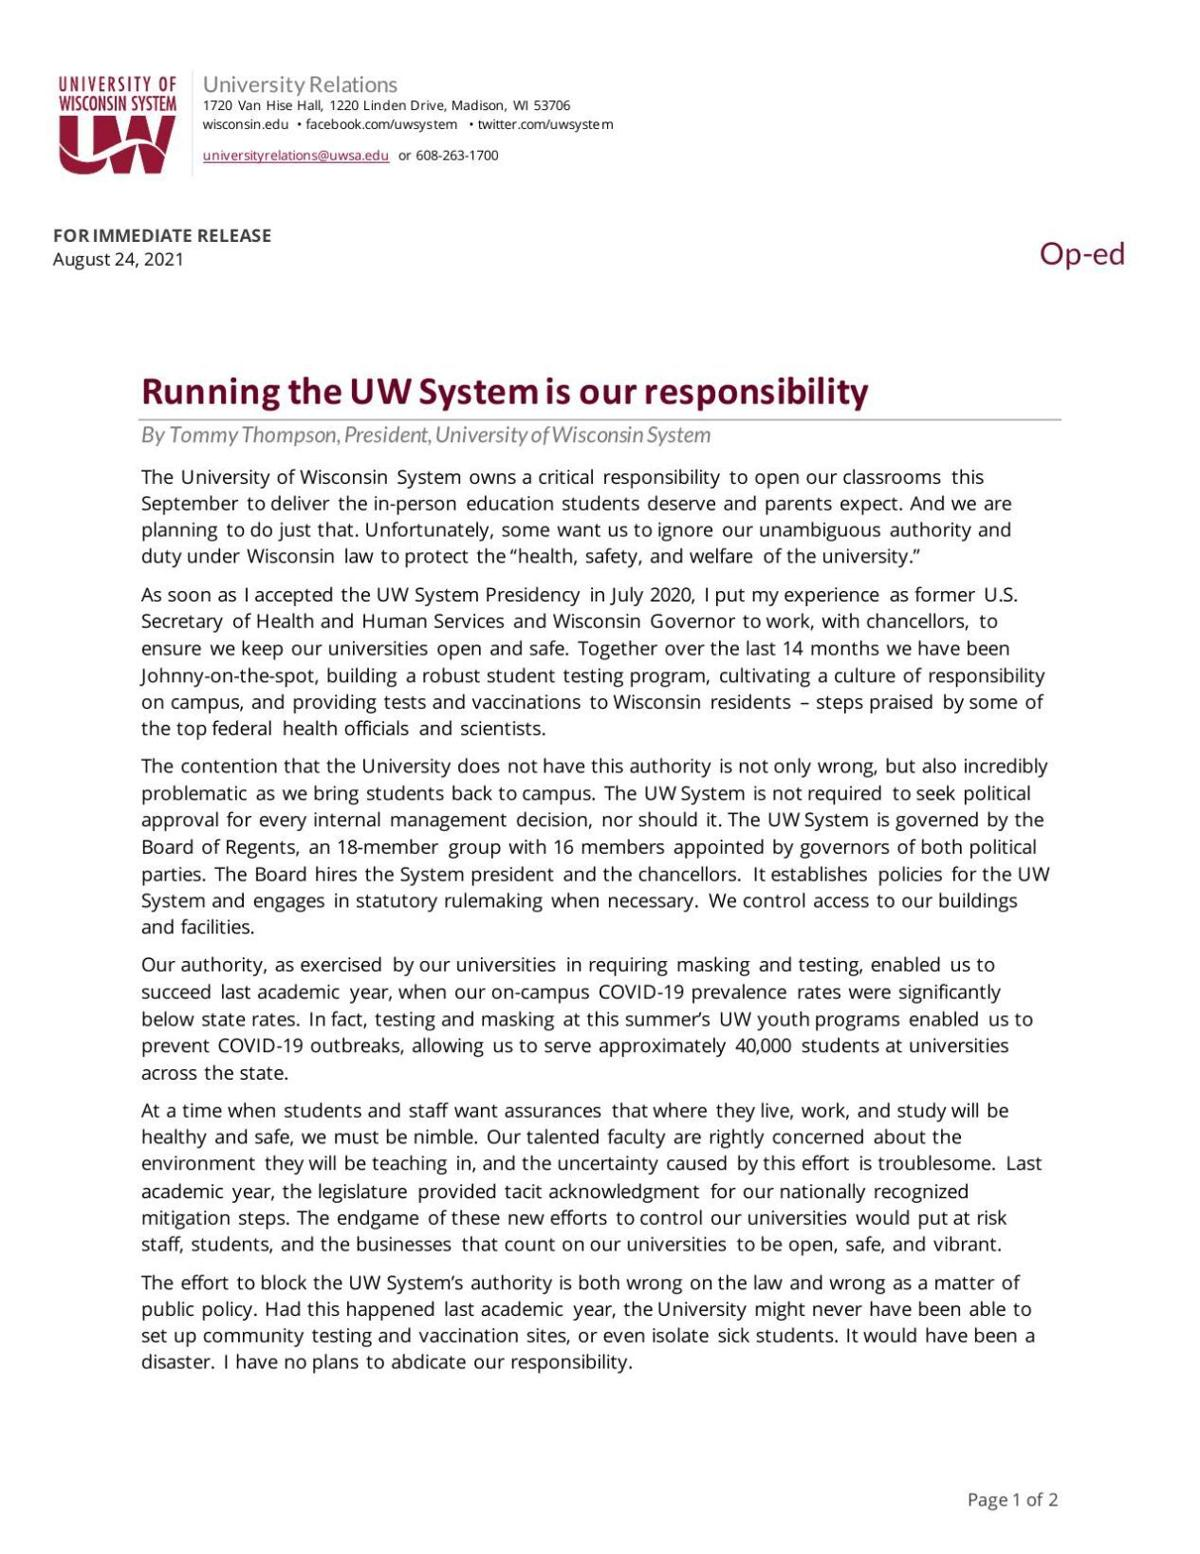 OP-ED - Running the UW System is our responsibility.pdf